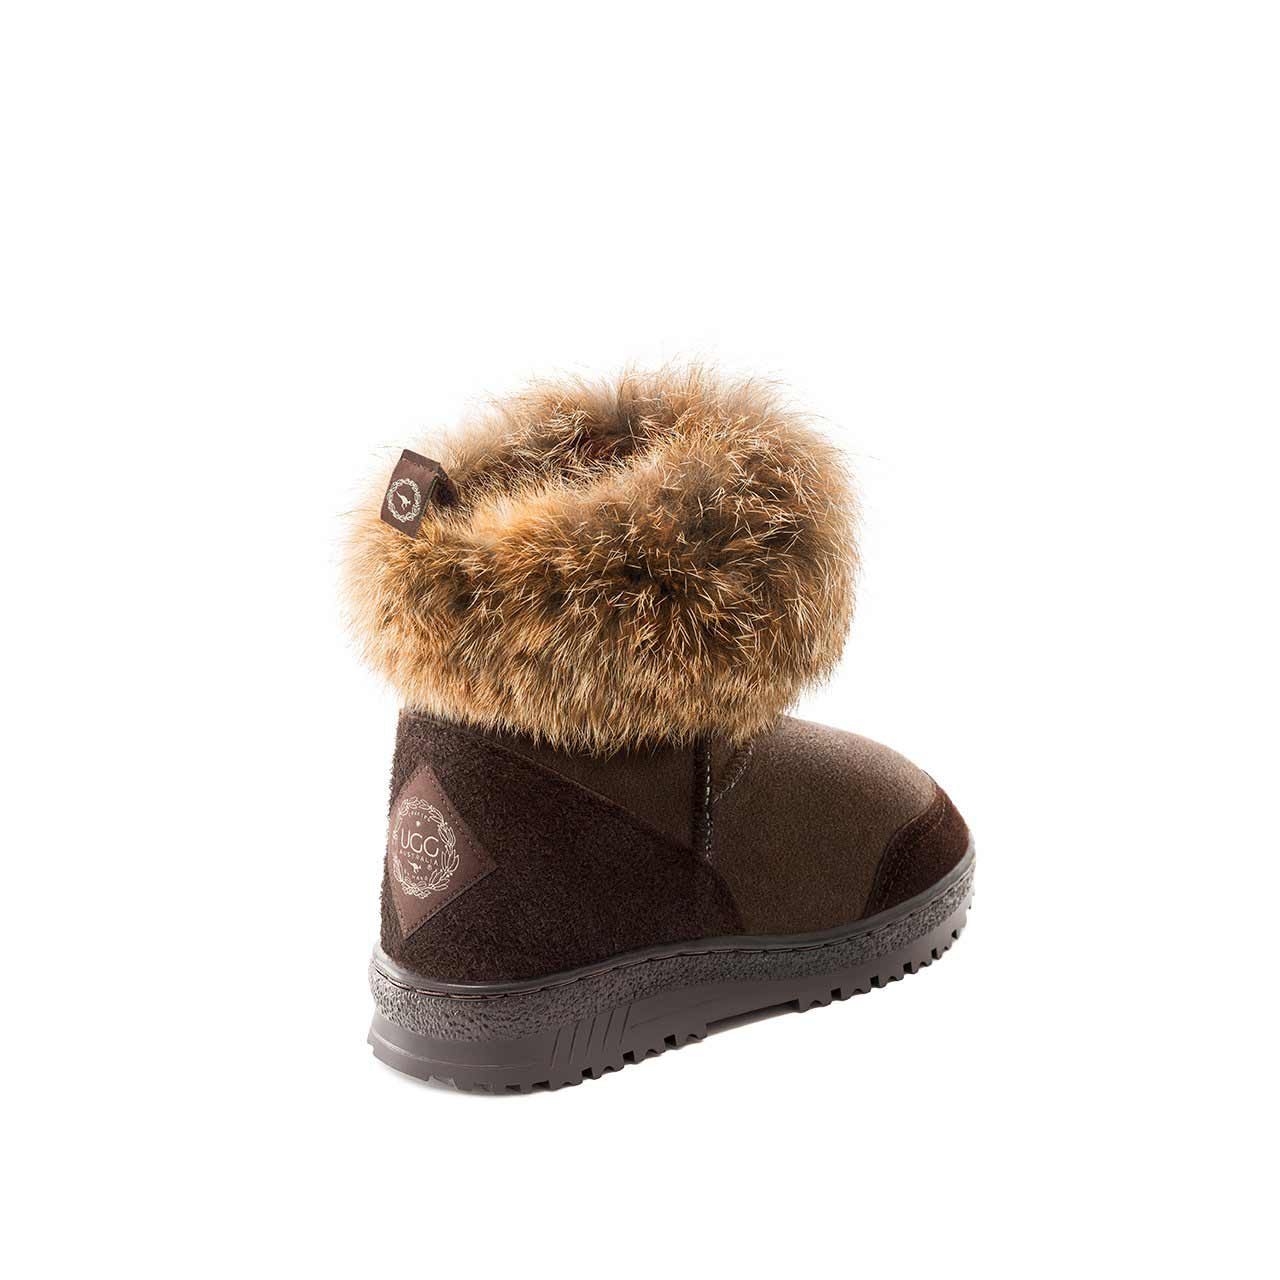 Bondi Mini Fox Boots | 100% Australian Made | Ugg Australia®